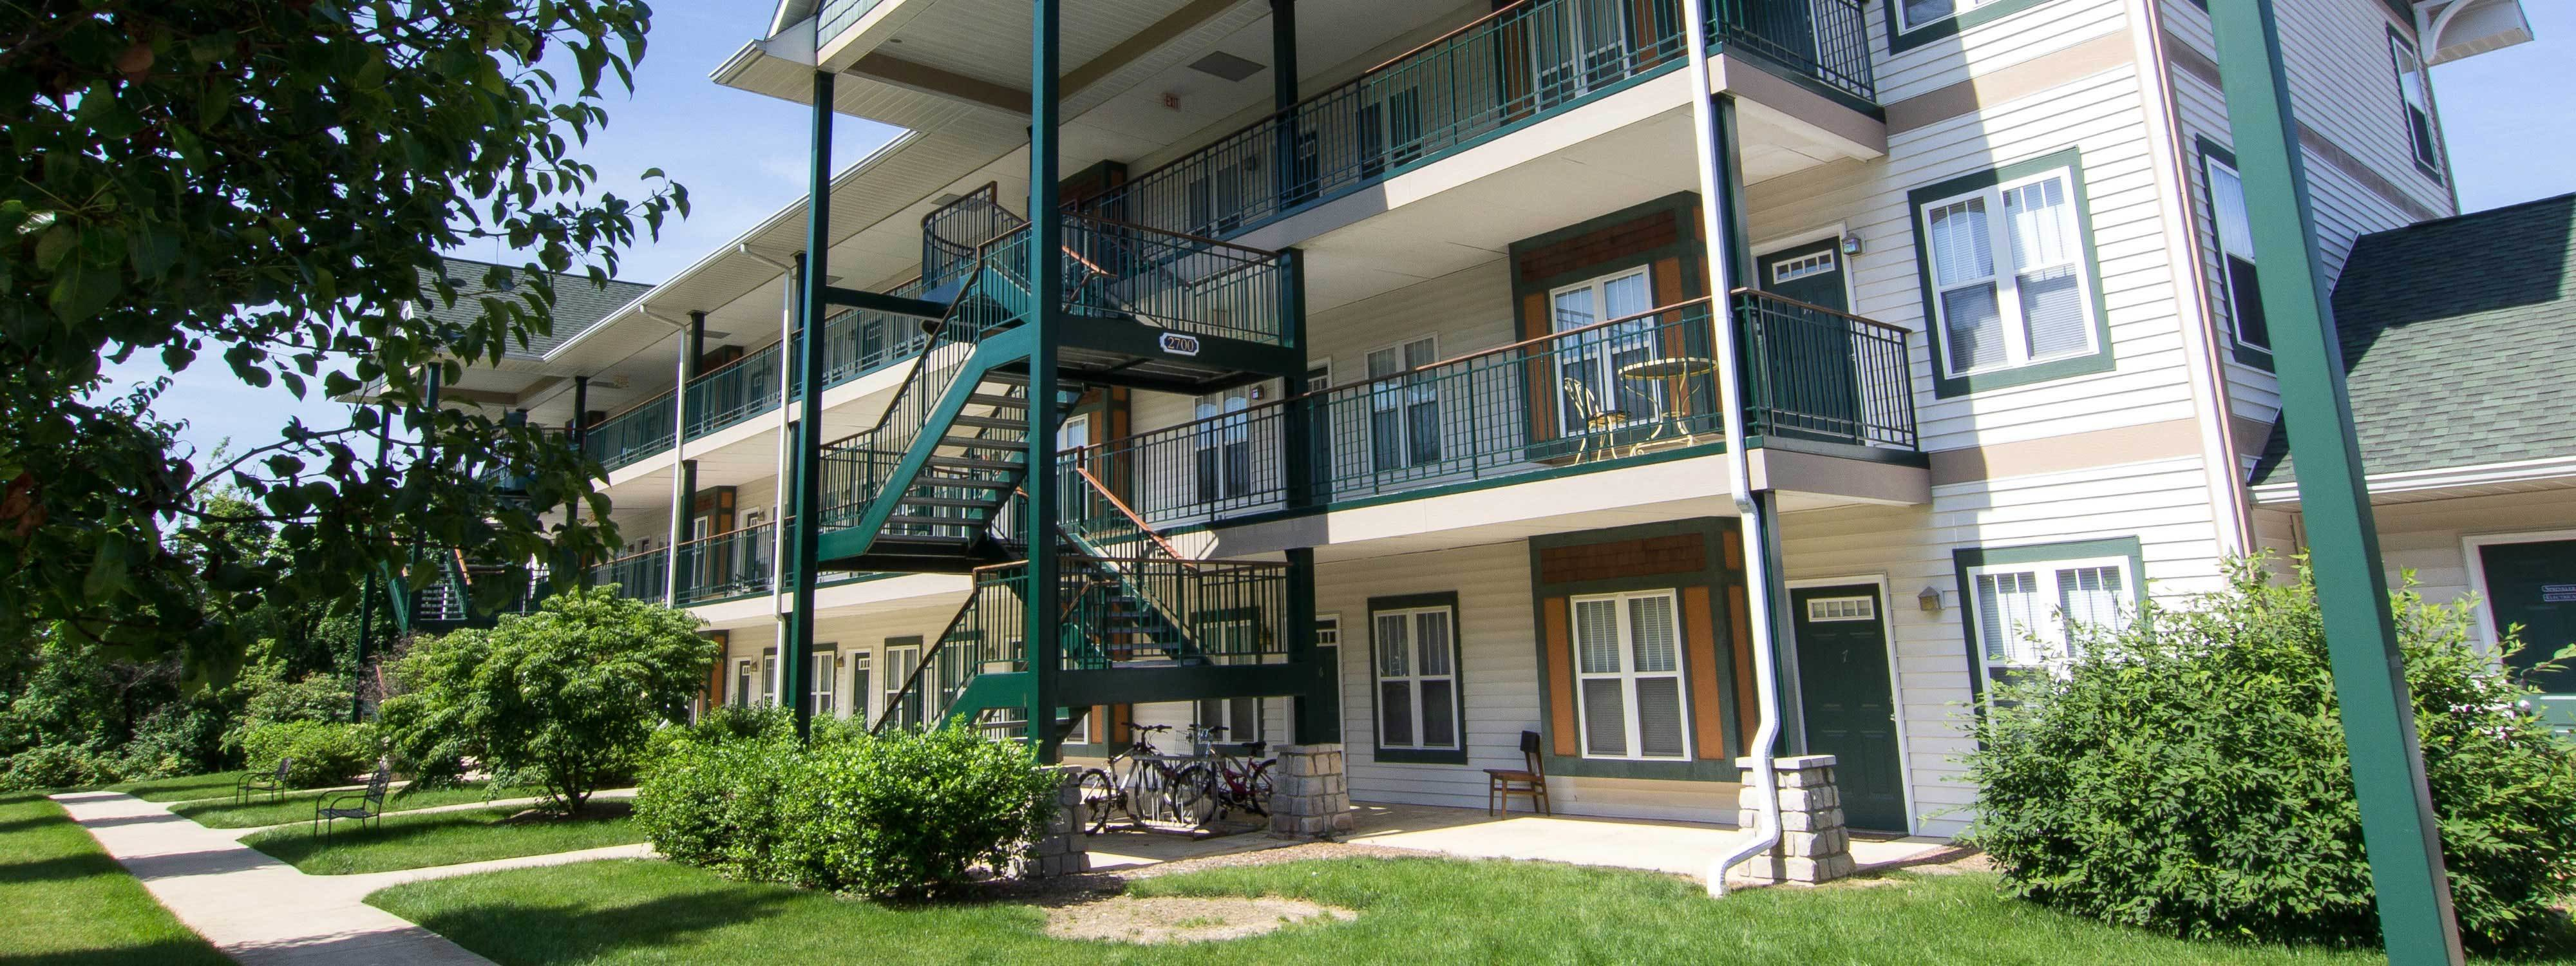 Best Bloomington Indiana Apartments Studios 1 To 4 Bedroom Rentals By Renaissance Rentals With Pictures